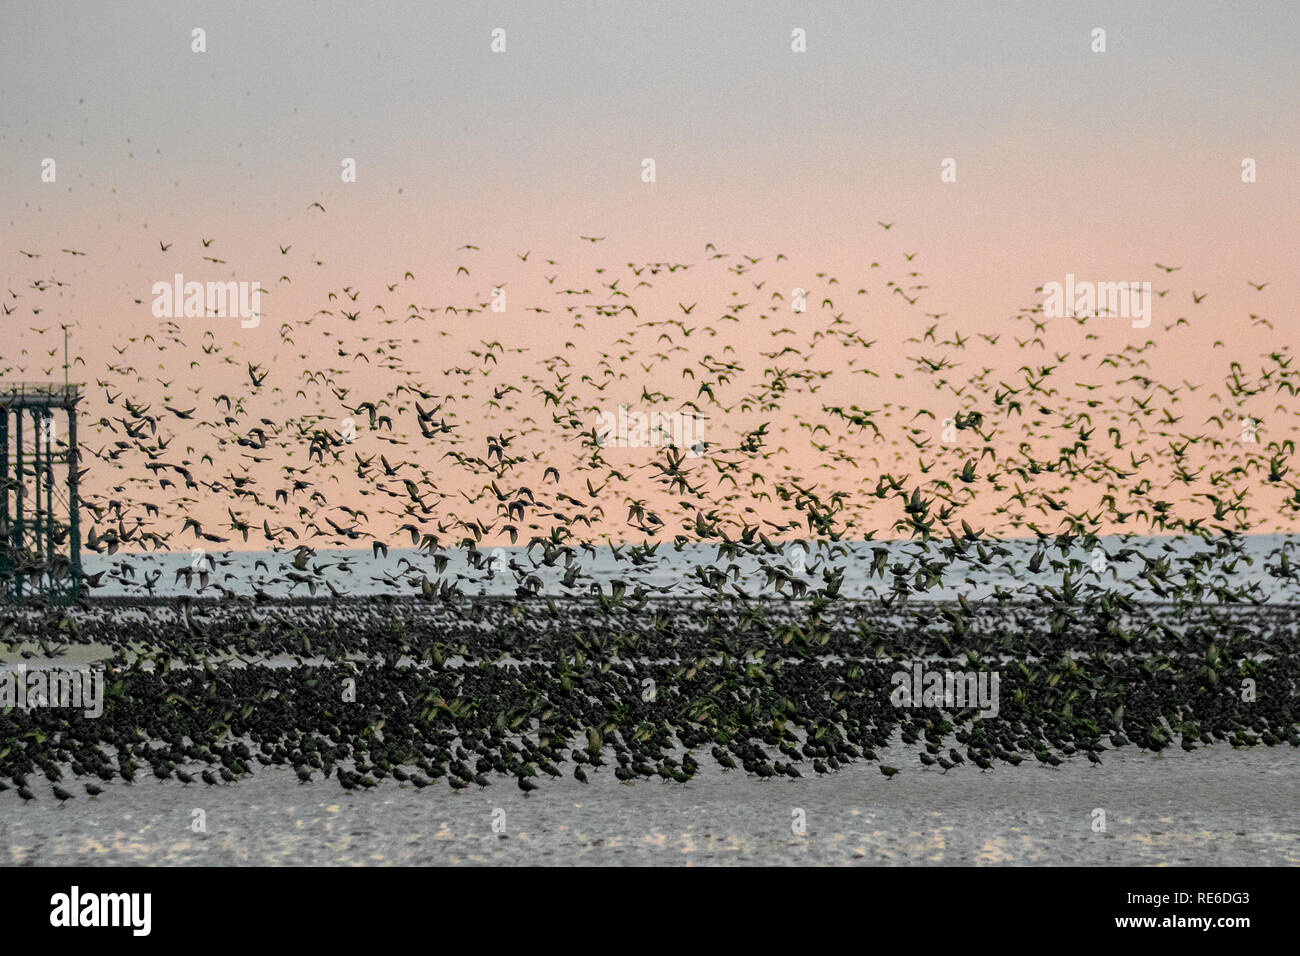 Blackpool, Lancashire.  19th Jan, 2019. UK Weather. Starlings gather on the beach before roosting. On a day with very little wind these passerine birds, their numbers swelled with migratory birds from the continent, take a rest from flying to gather on the beach shoreline before going to roost in the structure of the North Pier. They normally gather over their roosting site, and perform their wheeling stunts before they roost for the night.Credit: MediaWorldimages/AlamyLiveNews. - Stock Image